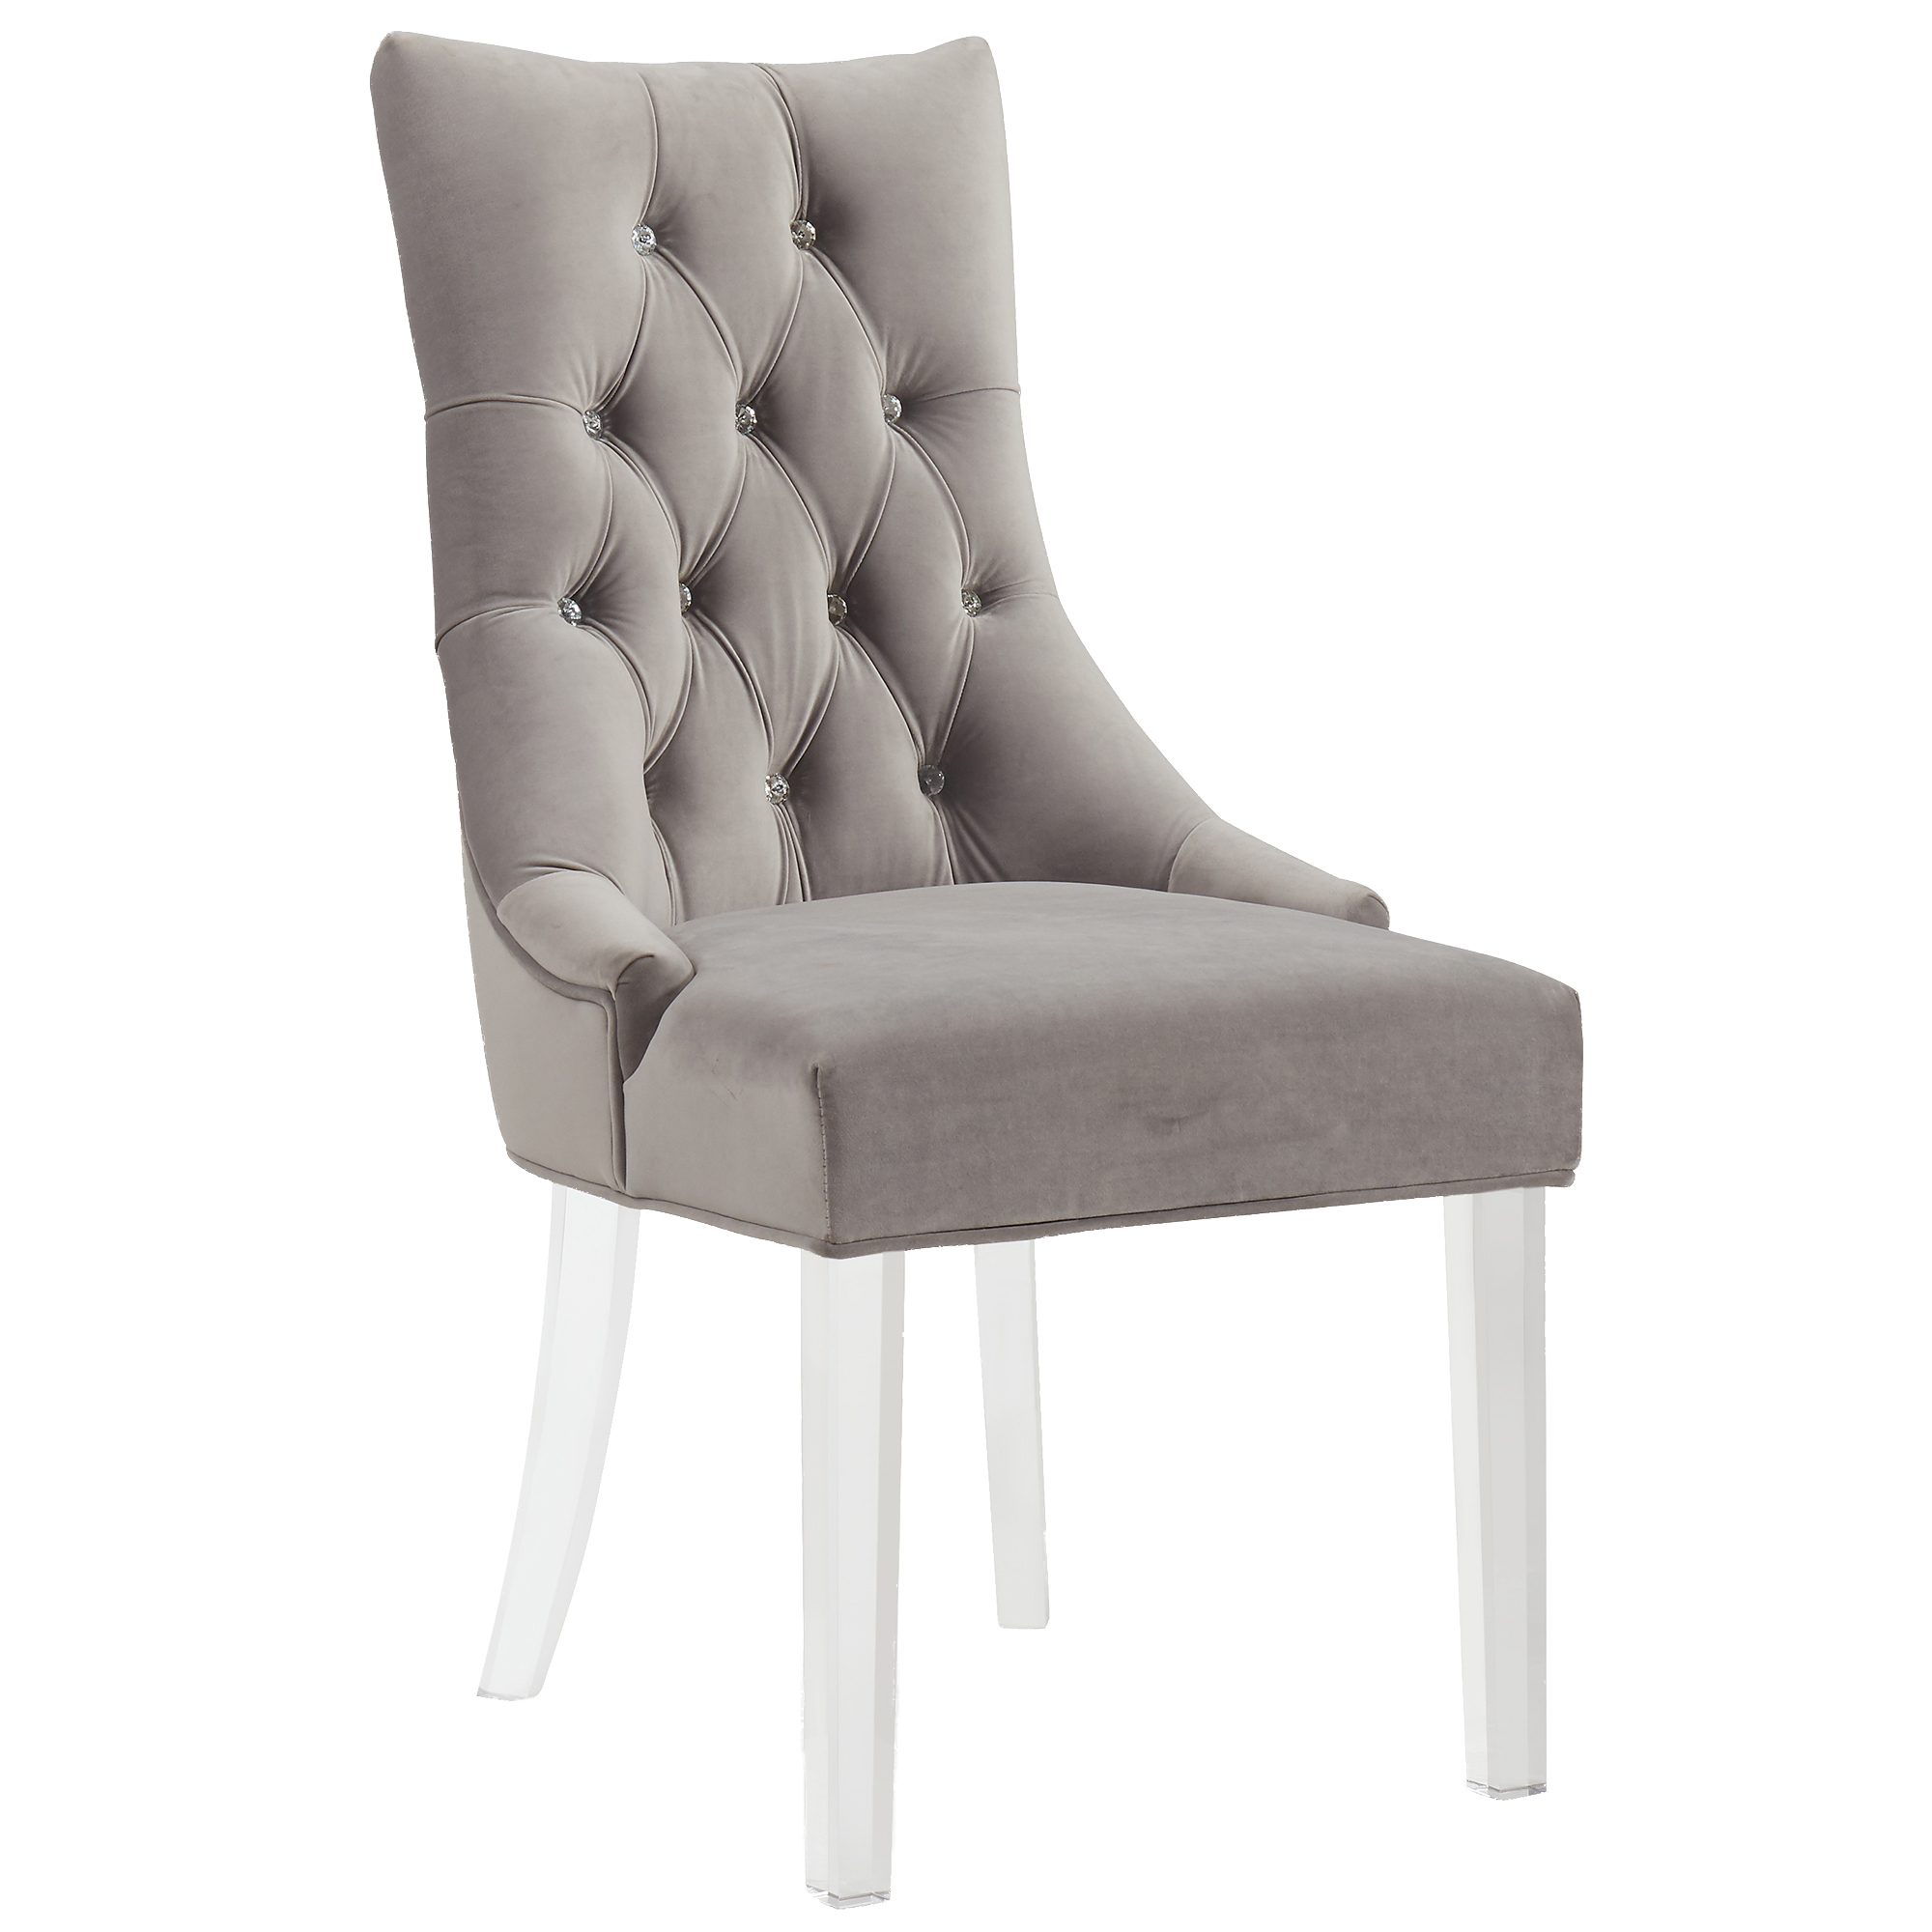 Contemporary Velvet & Acrylic Accent/Dining Chair in Grey